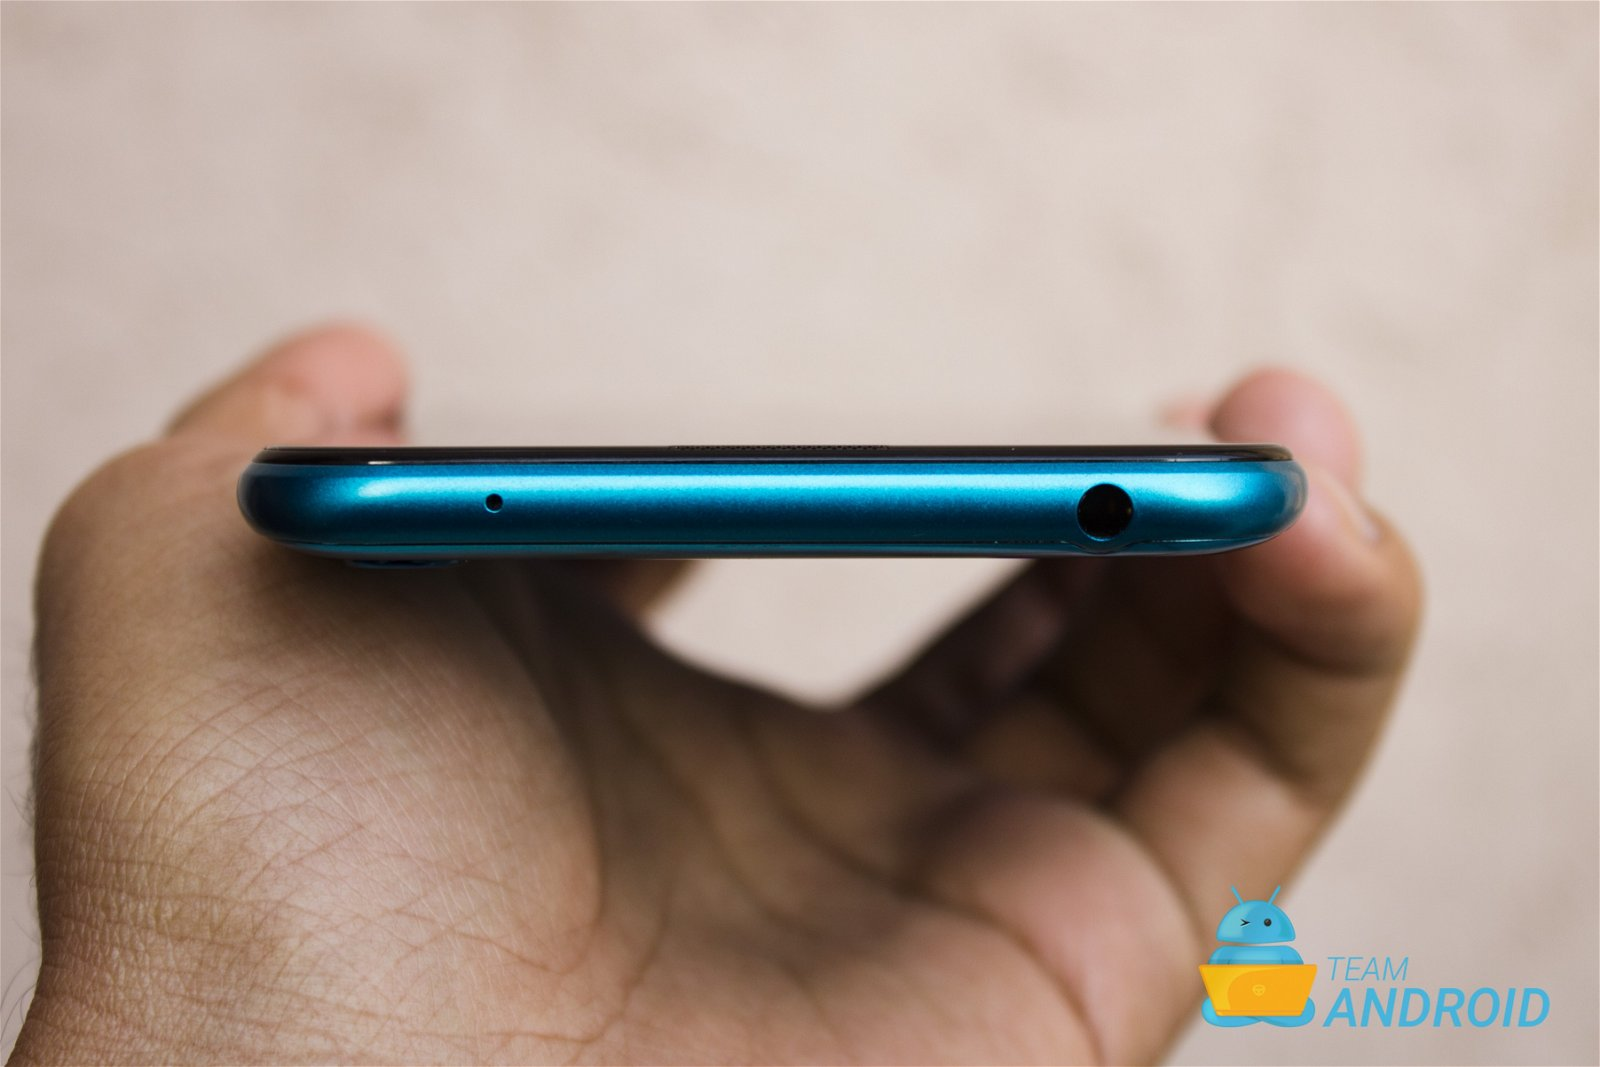 Huawei Y7 Prime 2019 Review: Essential Specs for Less [Full Review]